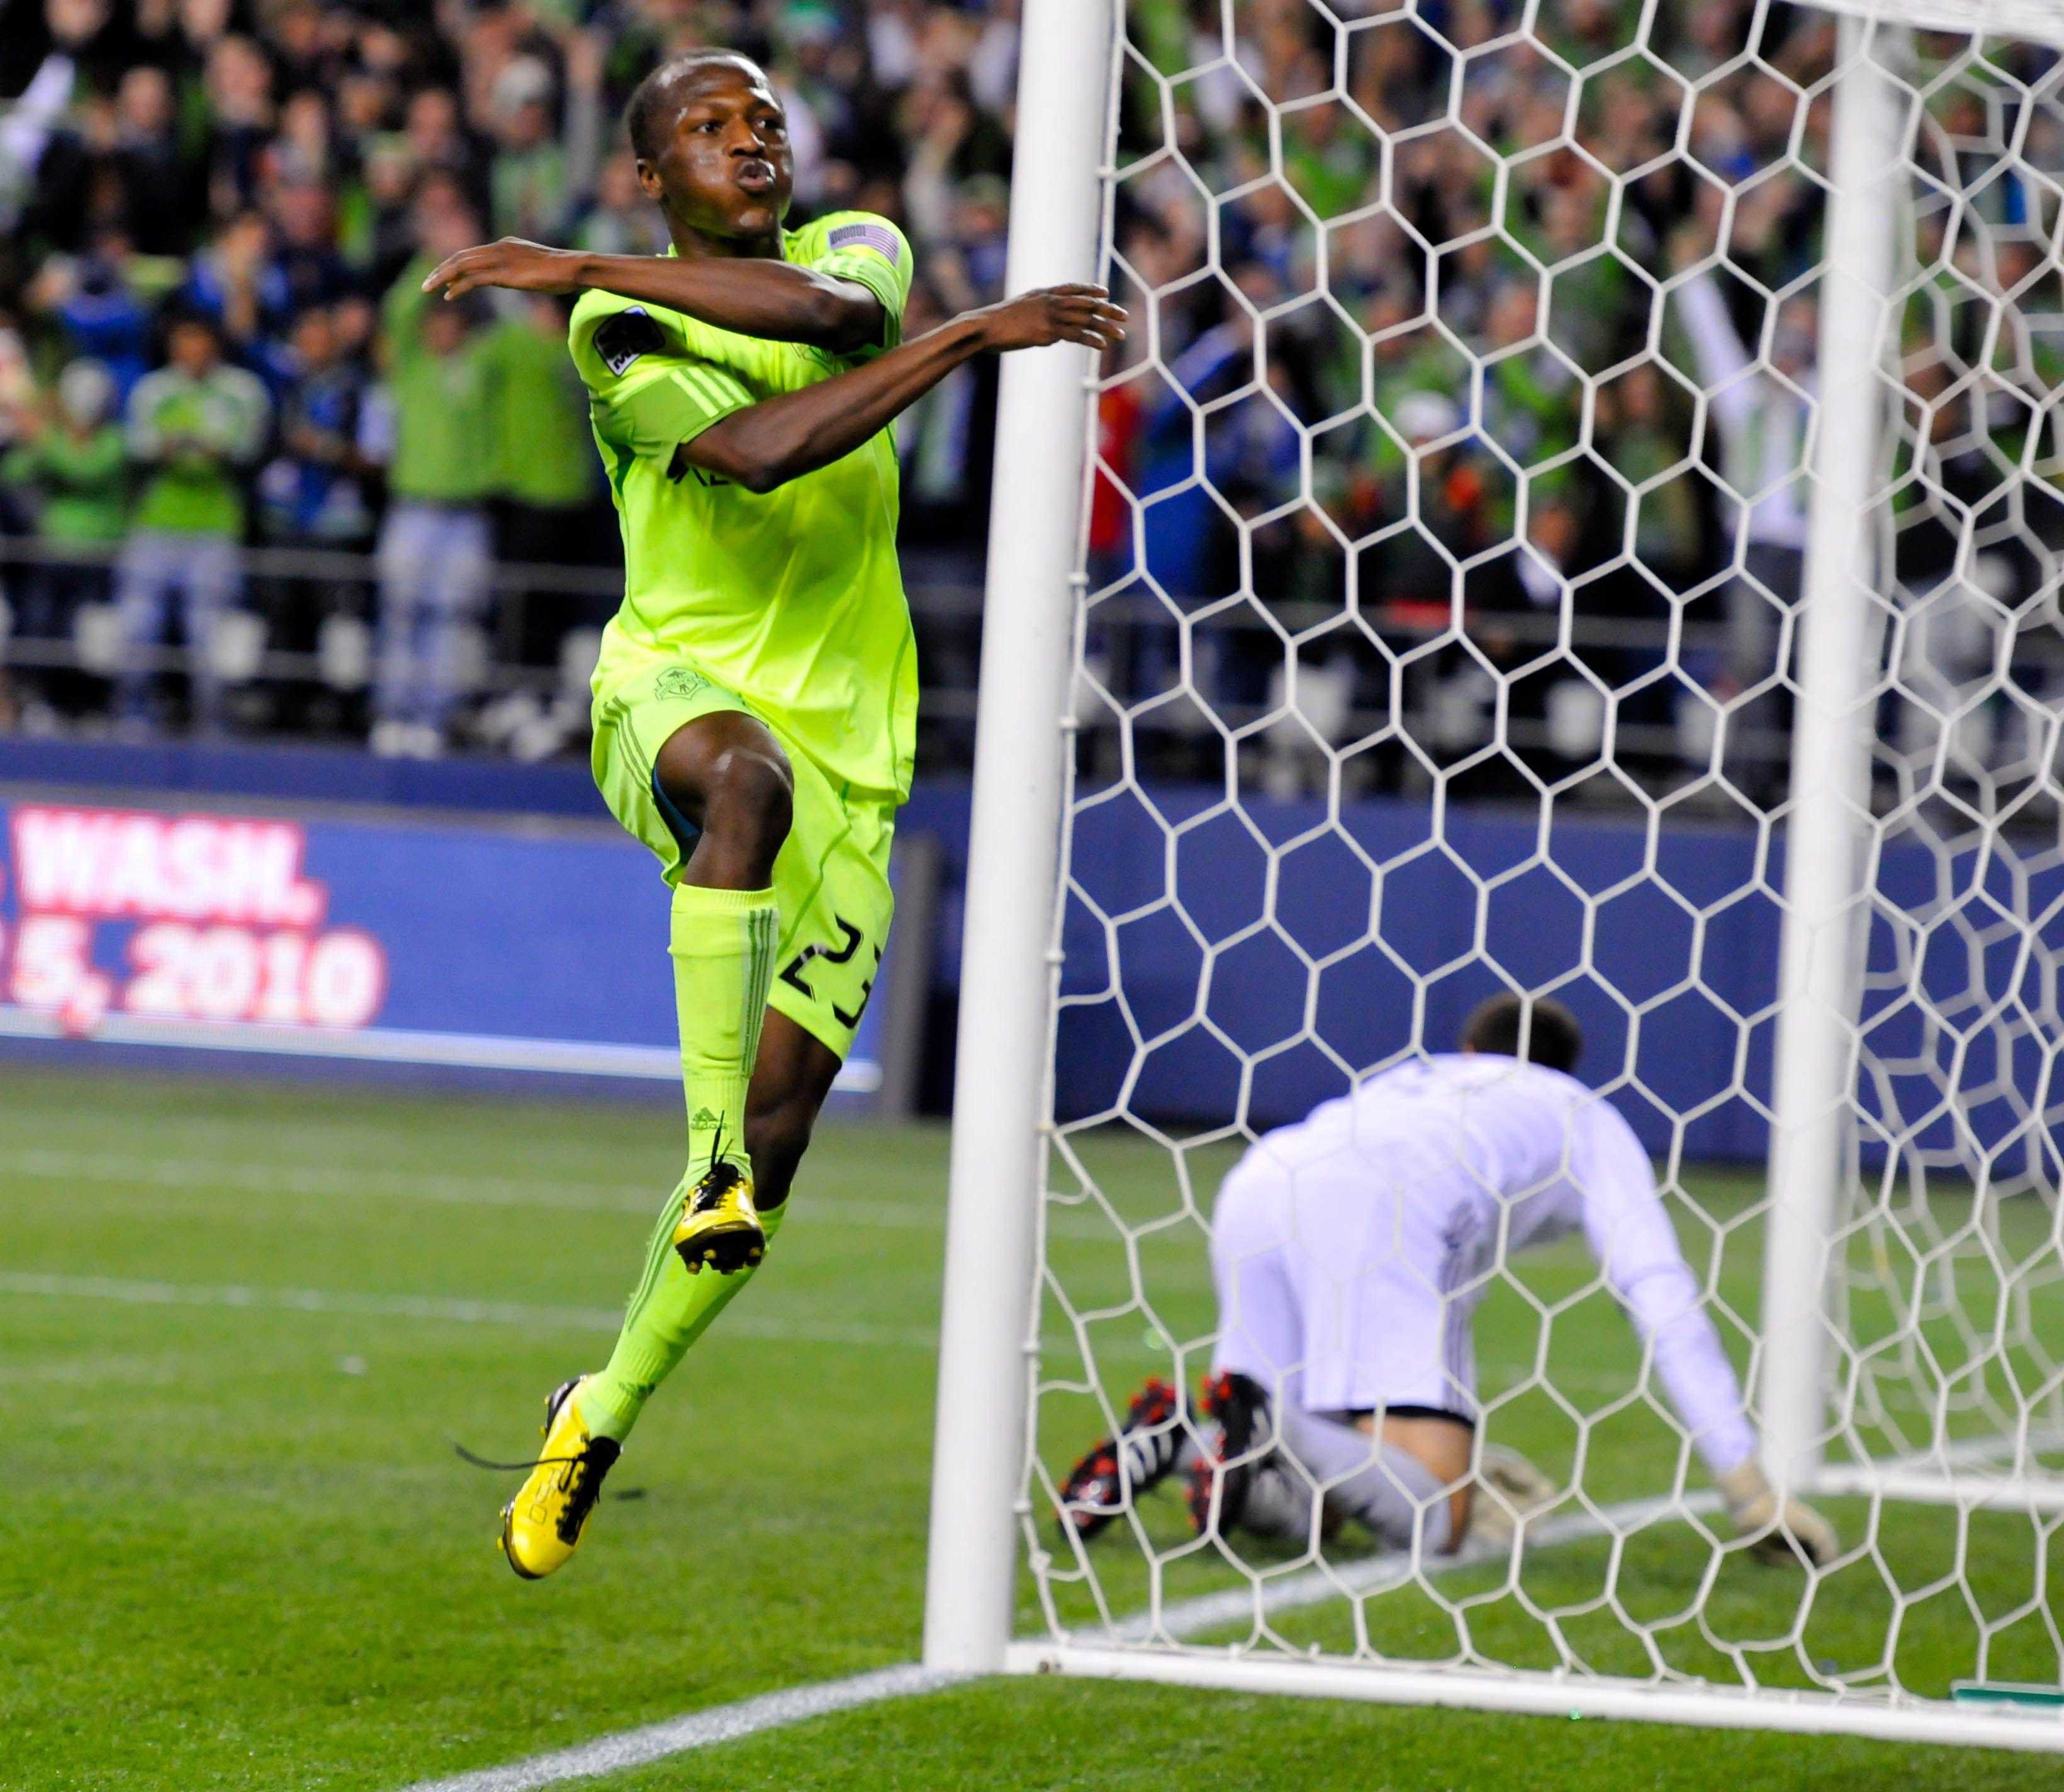 2010 US Open Cup Final: Sanna Nyassi of Seattle Sounders easy